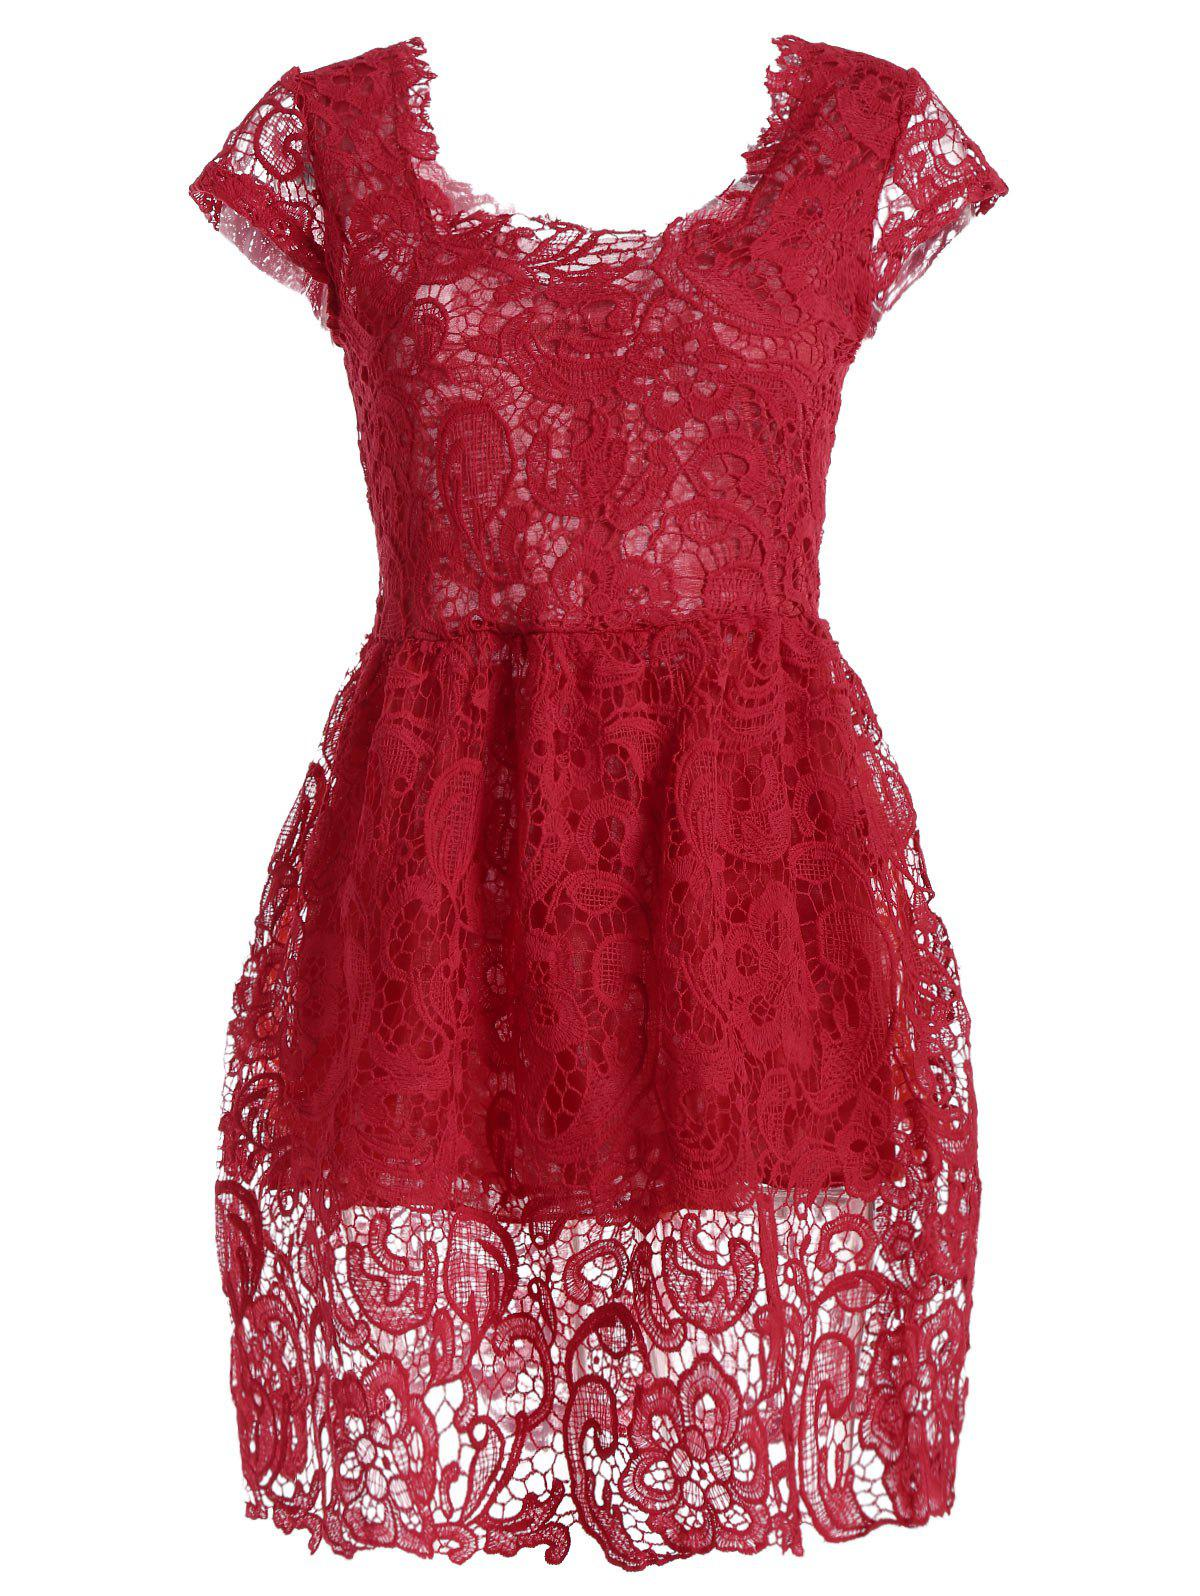 Hot High Waist Crochet Lace Short Cocktail Dress